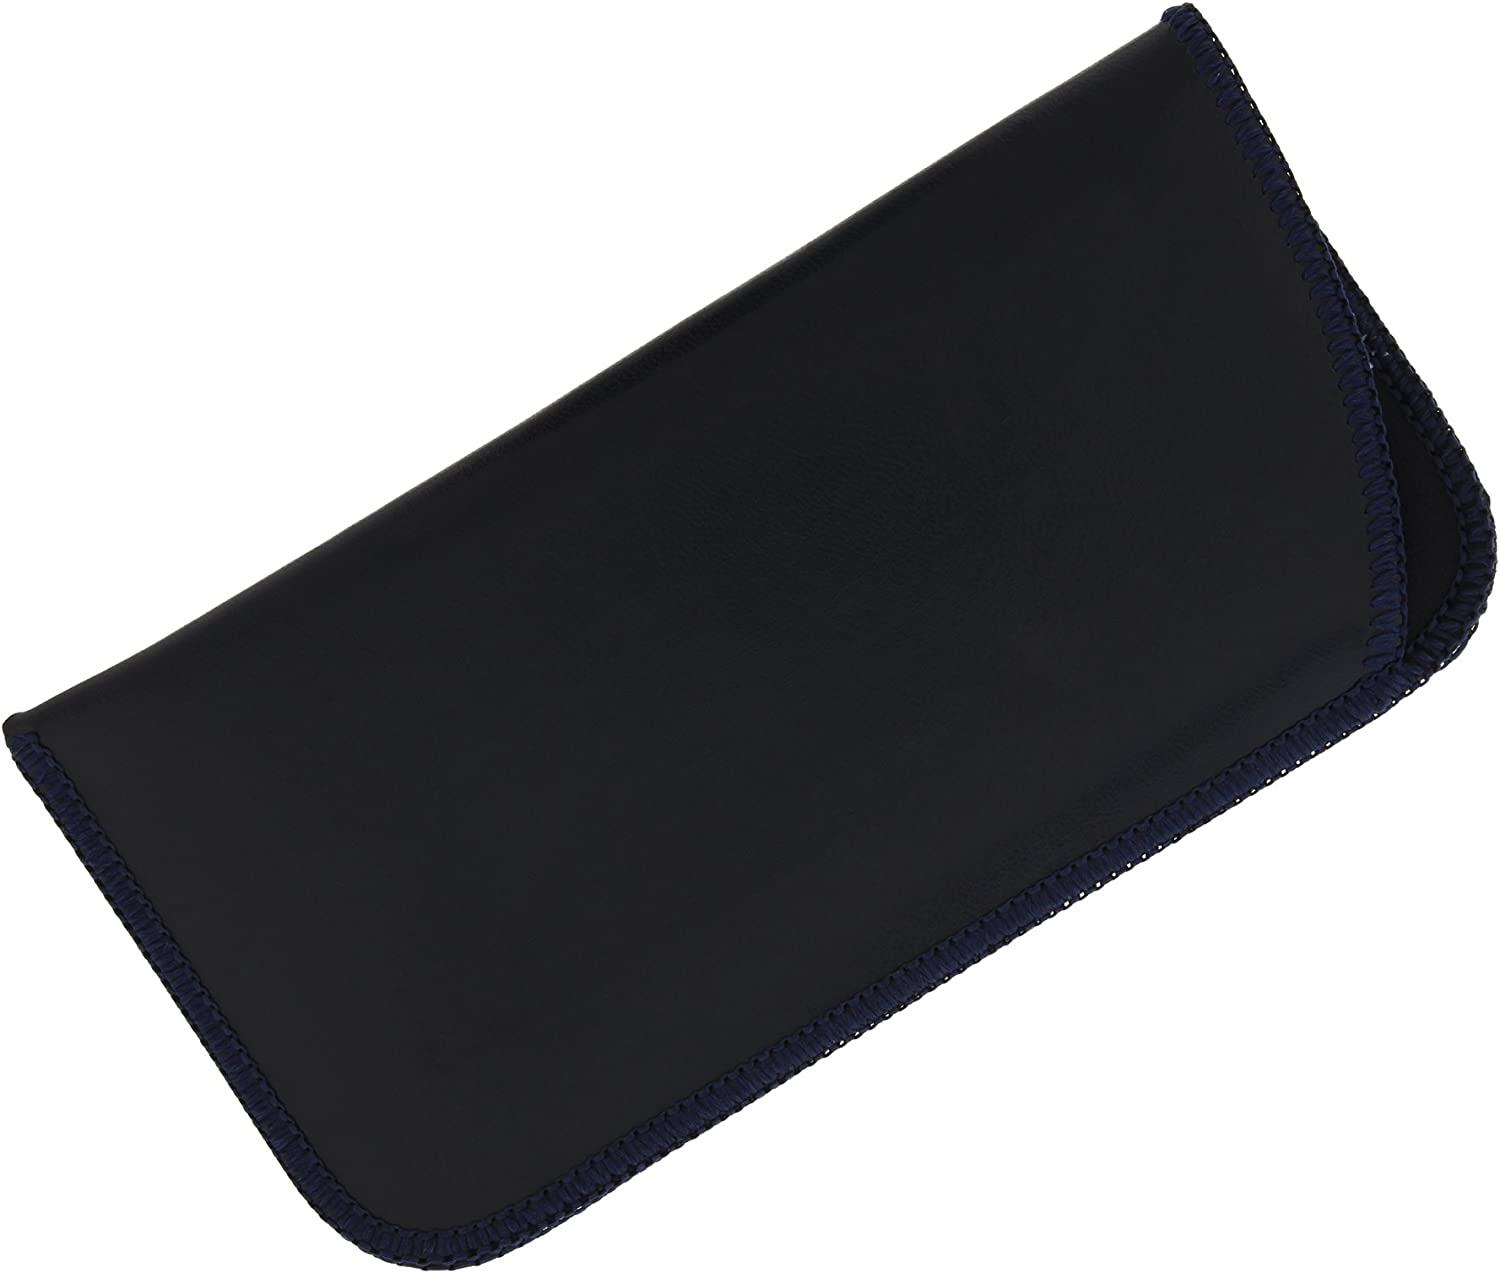 Classic Faux Leather Eyeglass Slip Cases In Navy For Men And Women, Multi Packs